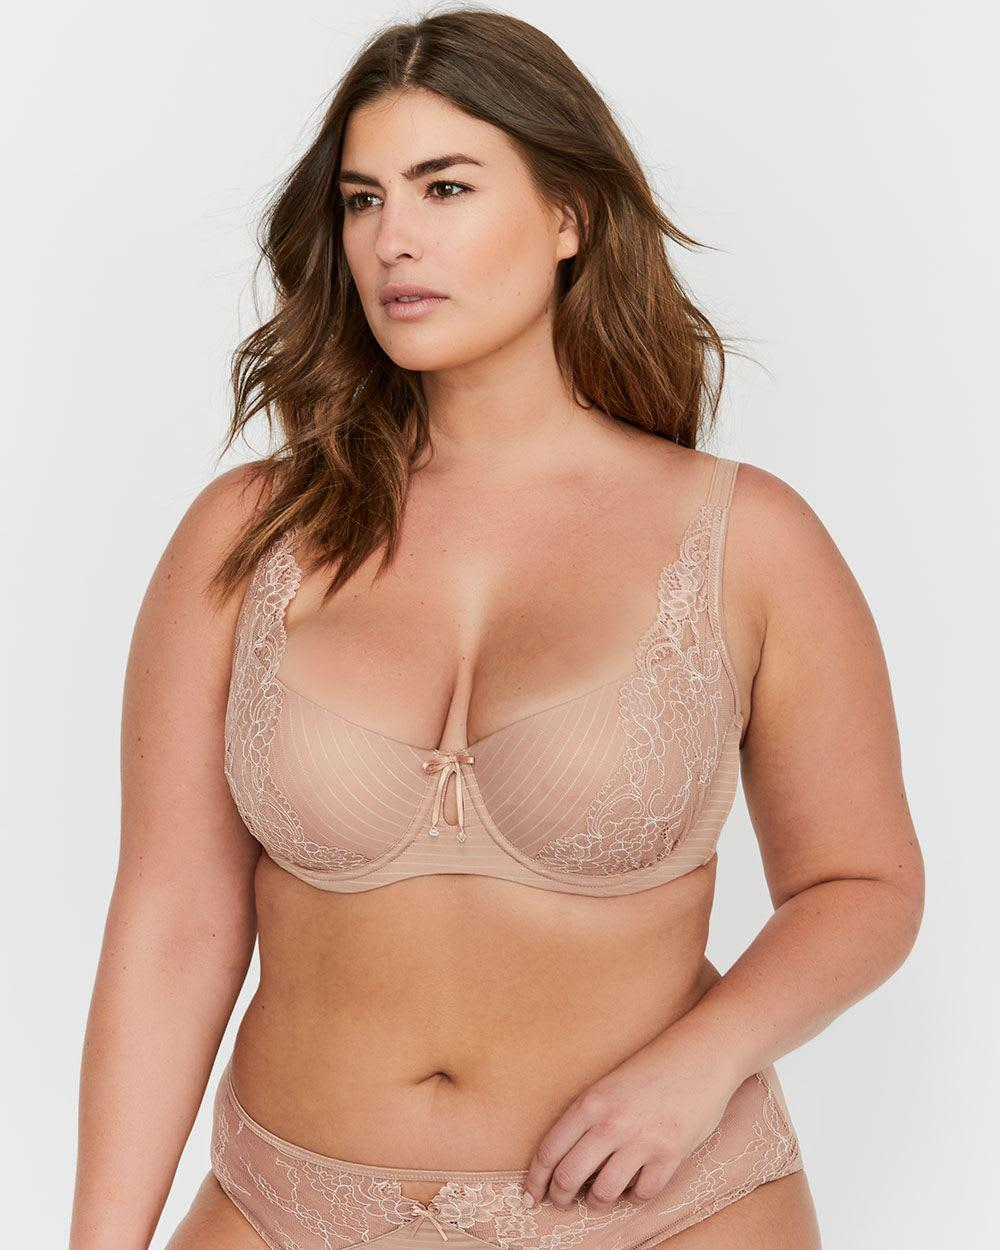 a9f2c7bed683a Addition Elle. Women s Ashley Graham Lace And Striped Diva Bra